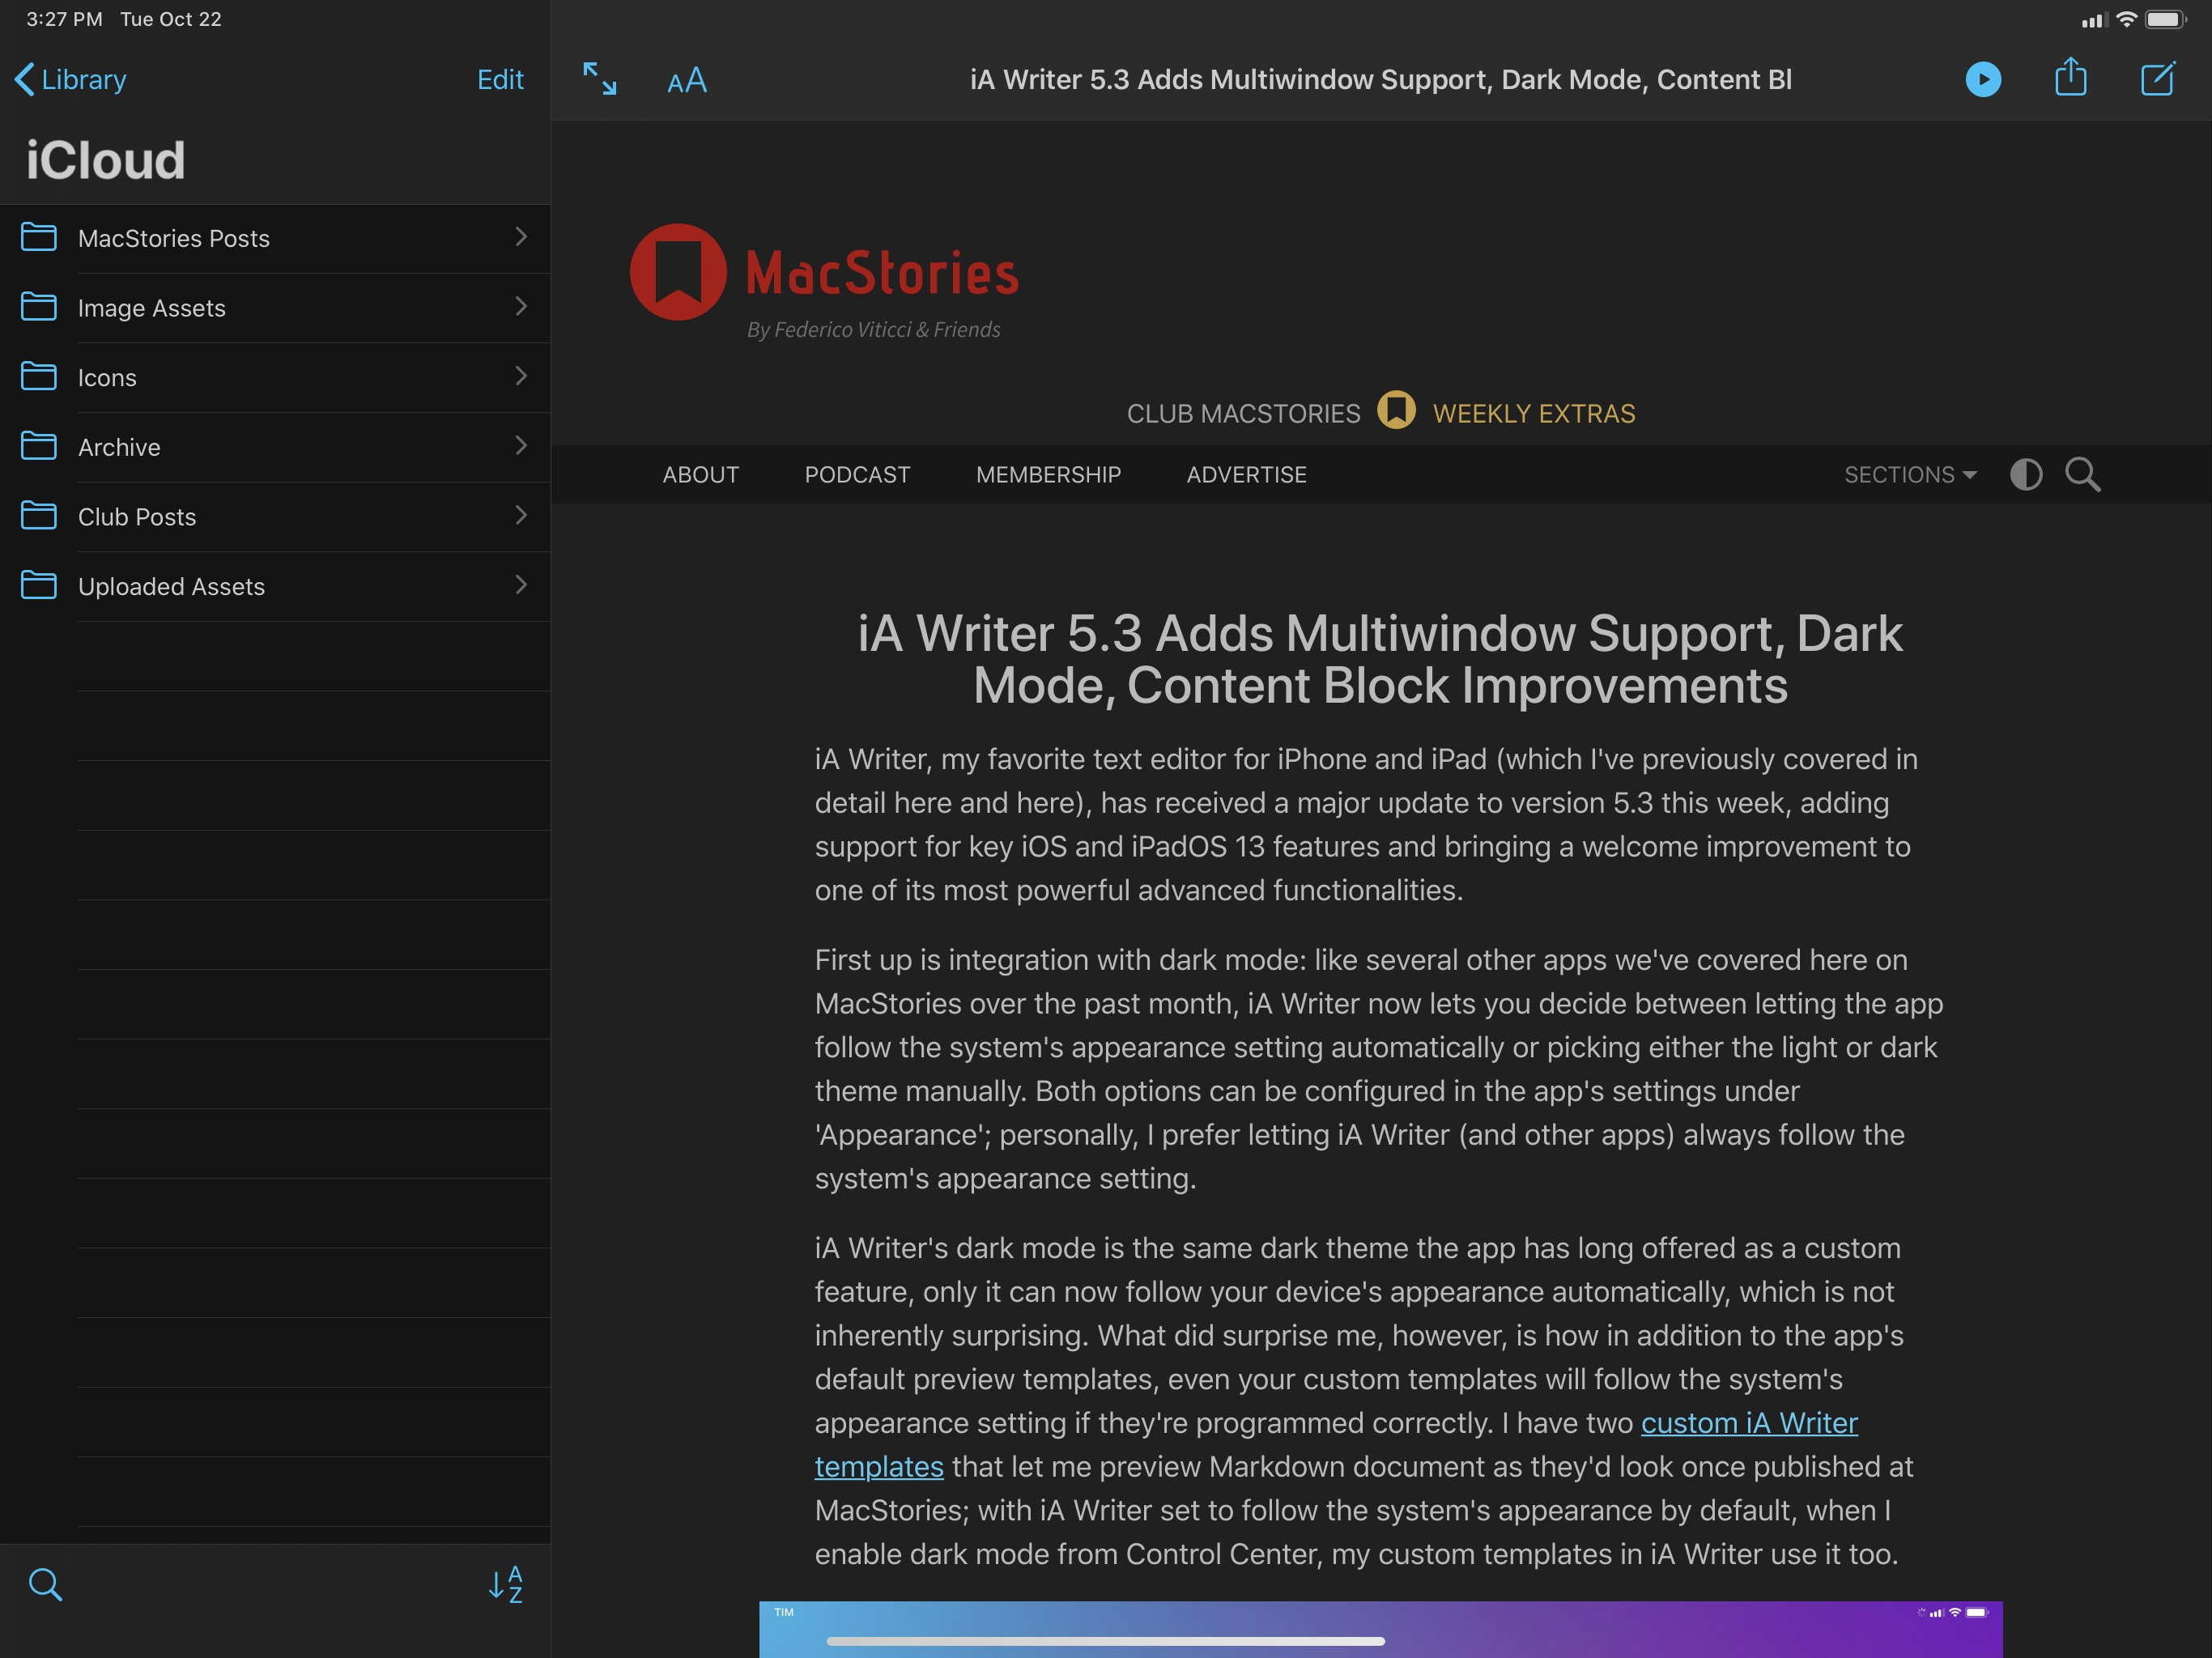 iA Writer 5.3 Adds Multiwindow Support, Dark Mode, Content Block Improvements